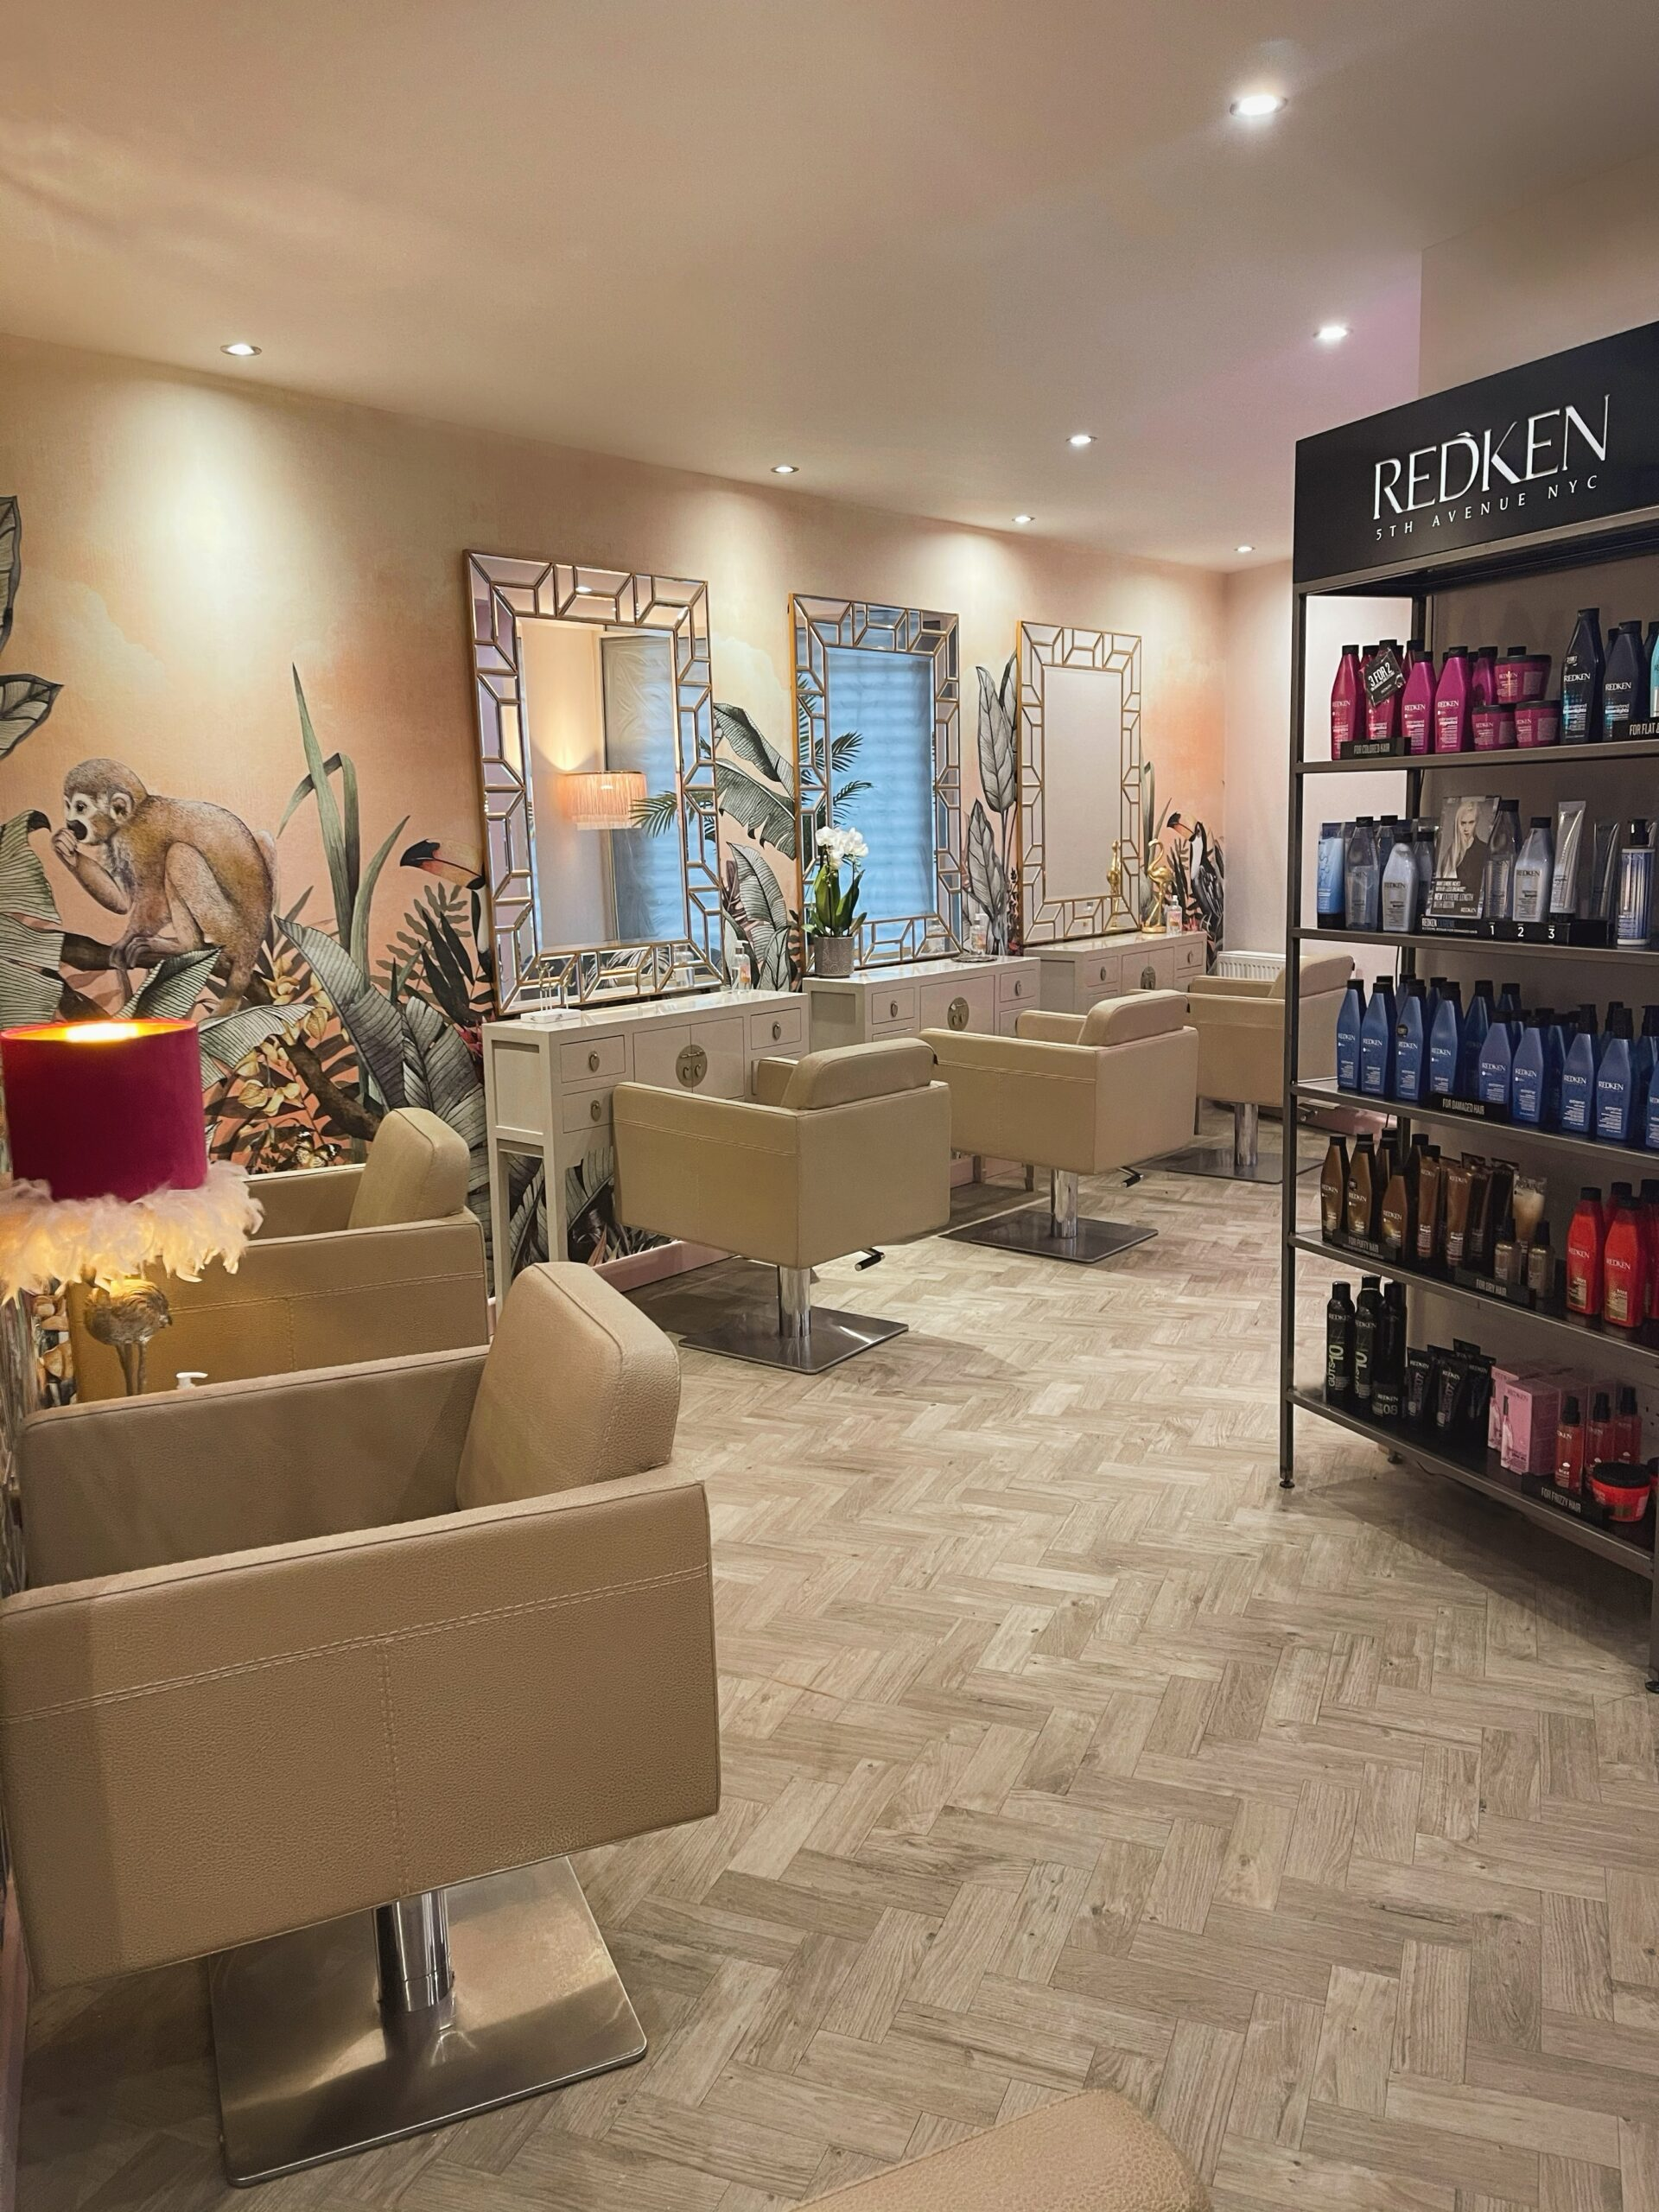 Wild Salon is one of the few Redken approved salons in the area